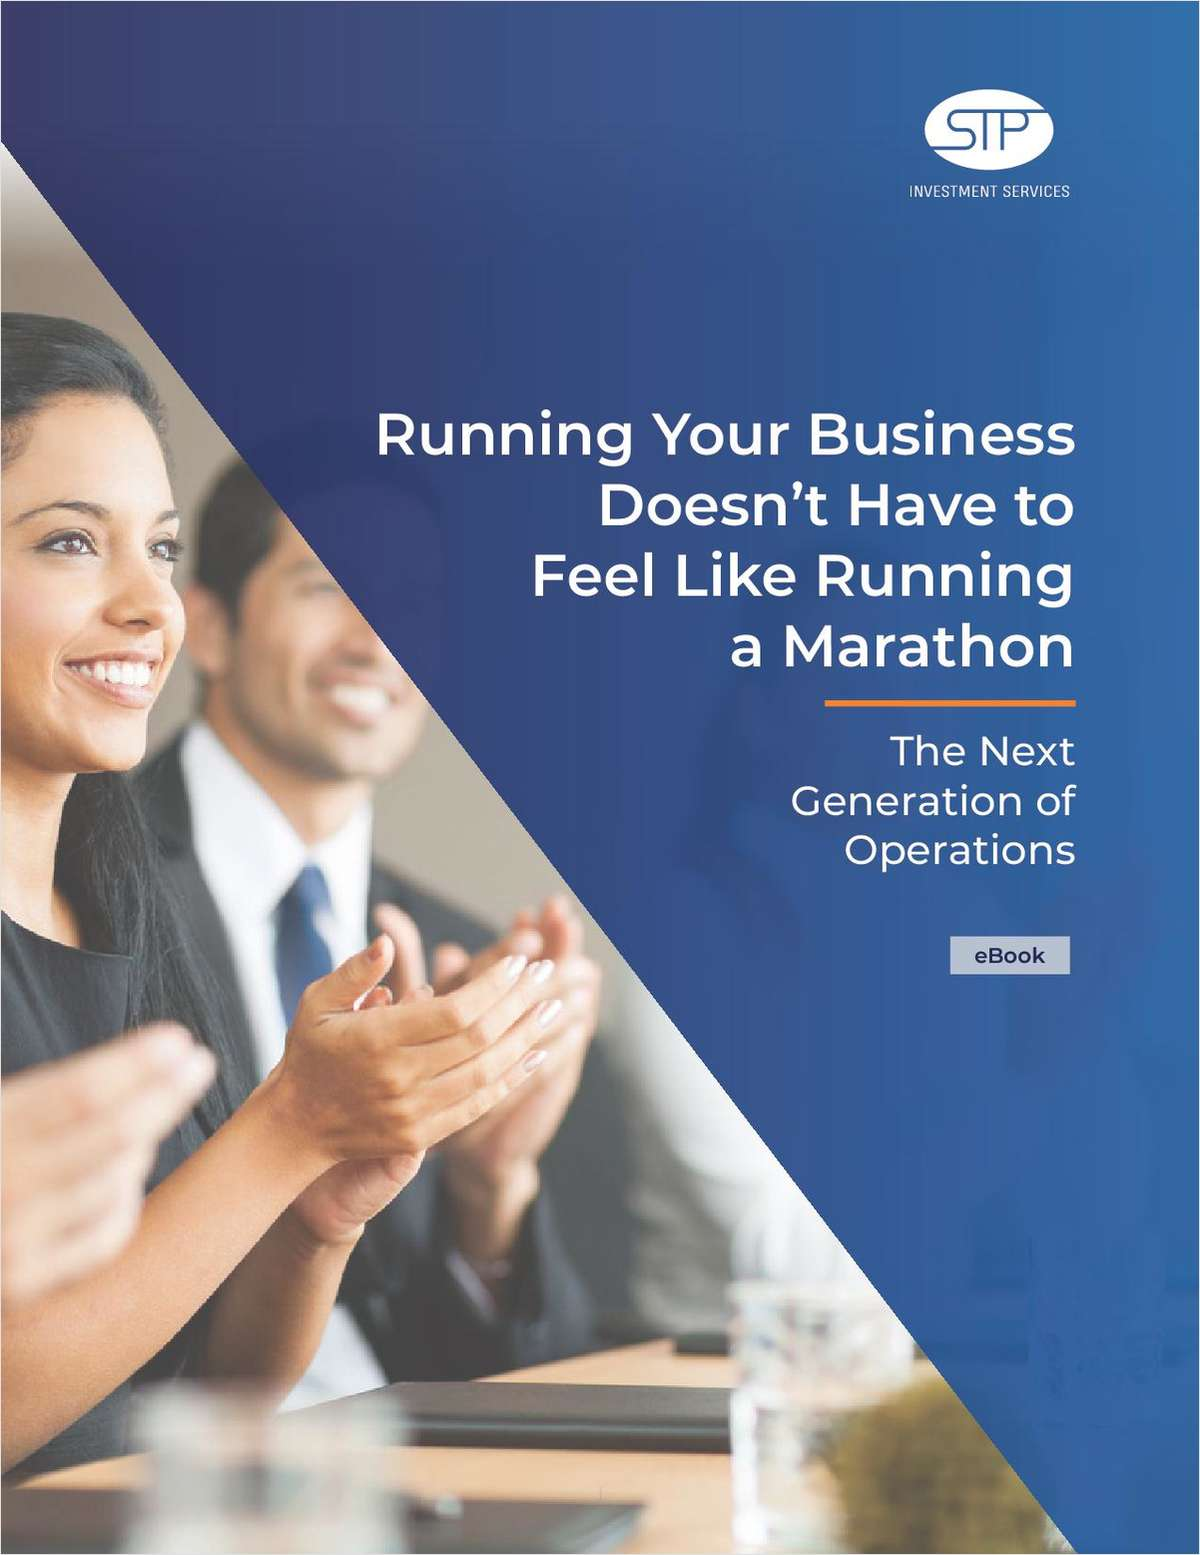 Running Your Business Doesn't Have to Feel Like Running a Marathon